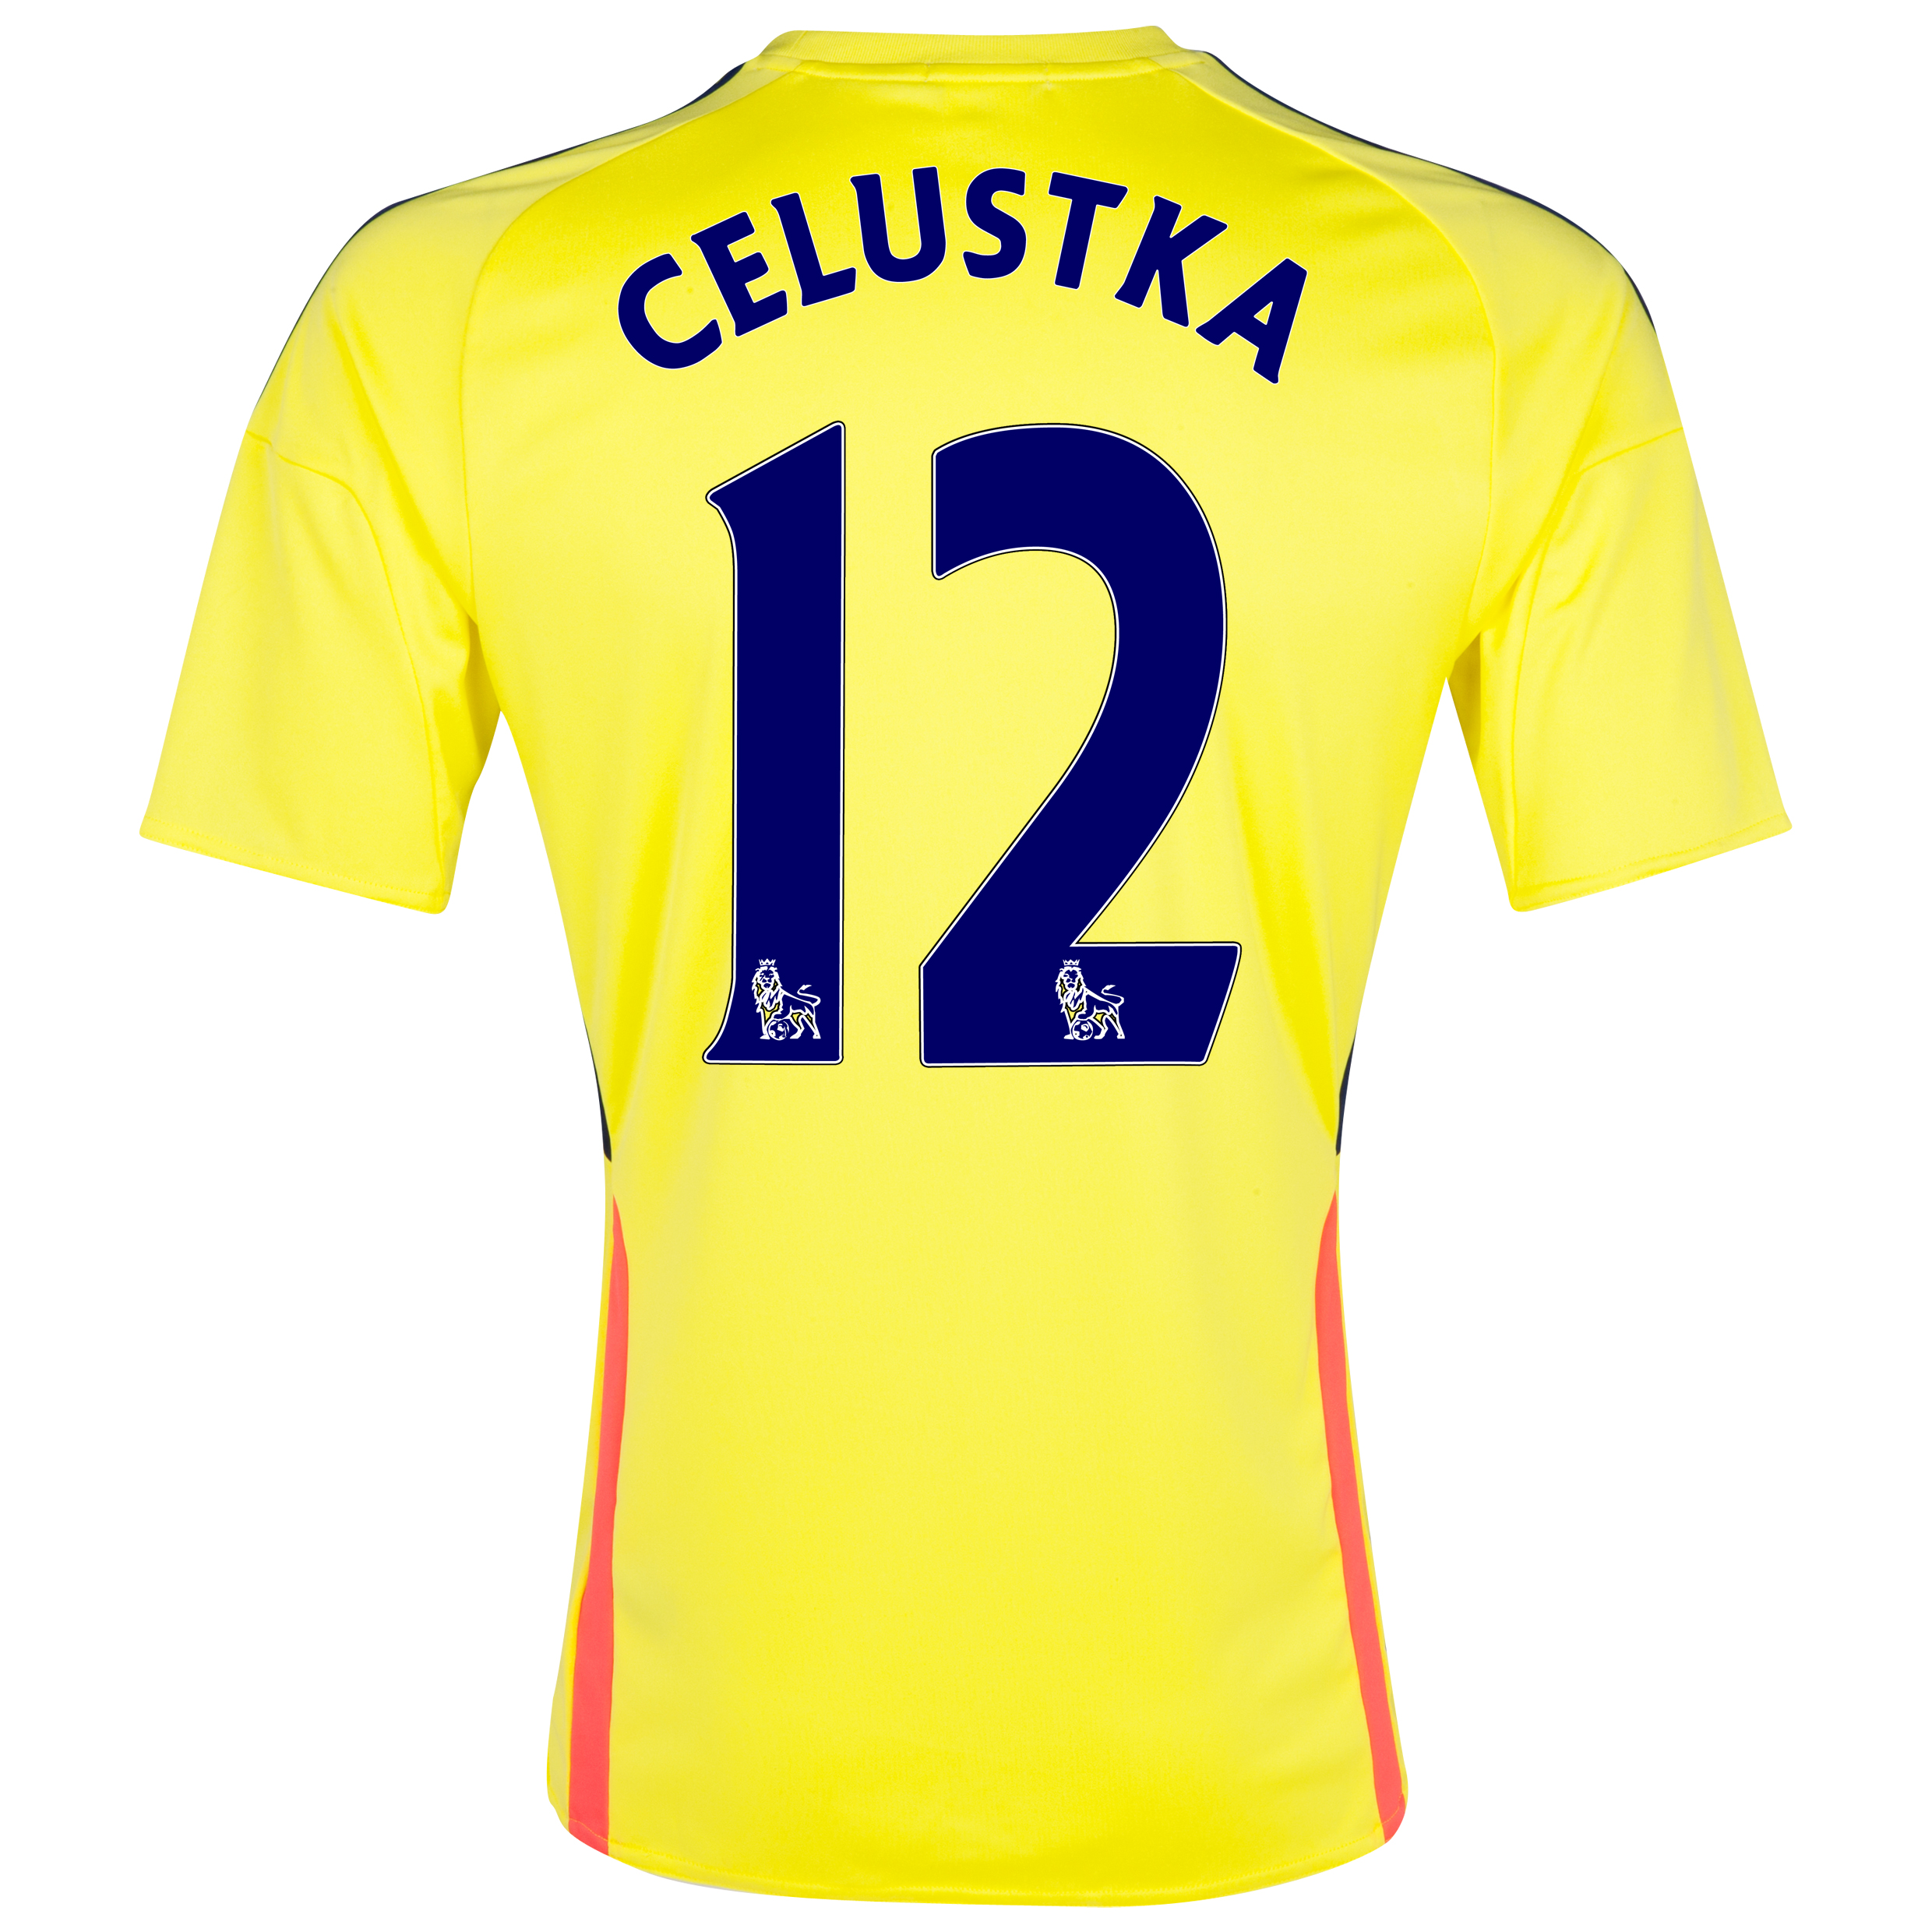 Sunderland Away Shirt 2013/14 - Junior with Celustka 12 printing